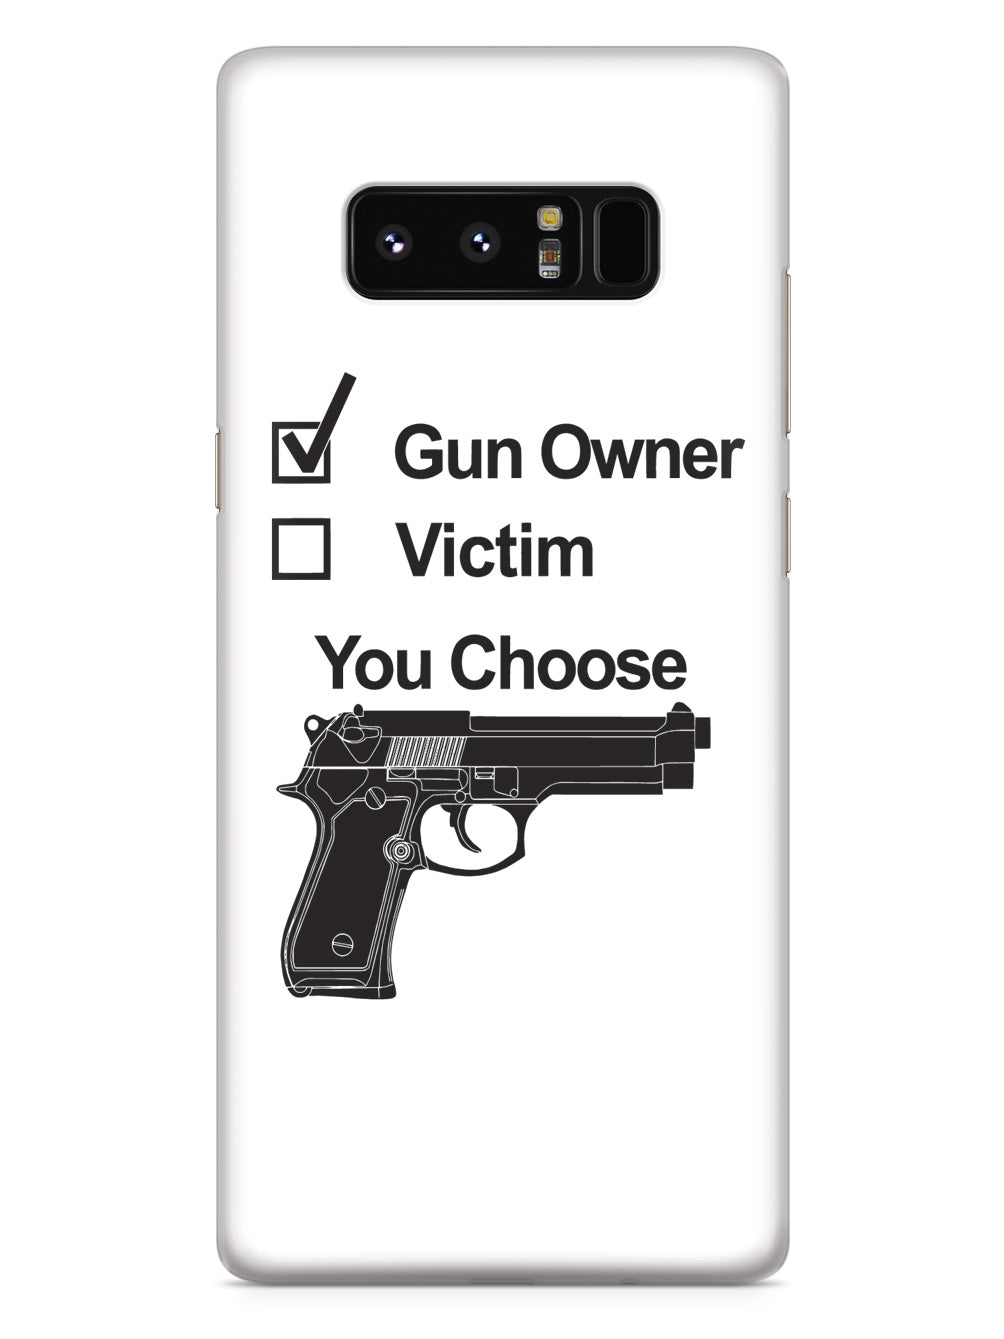 Gun Owner Or Victim, You Choose - White Case